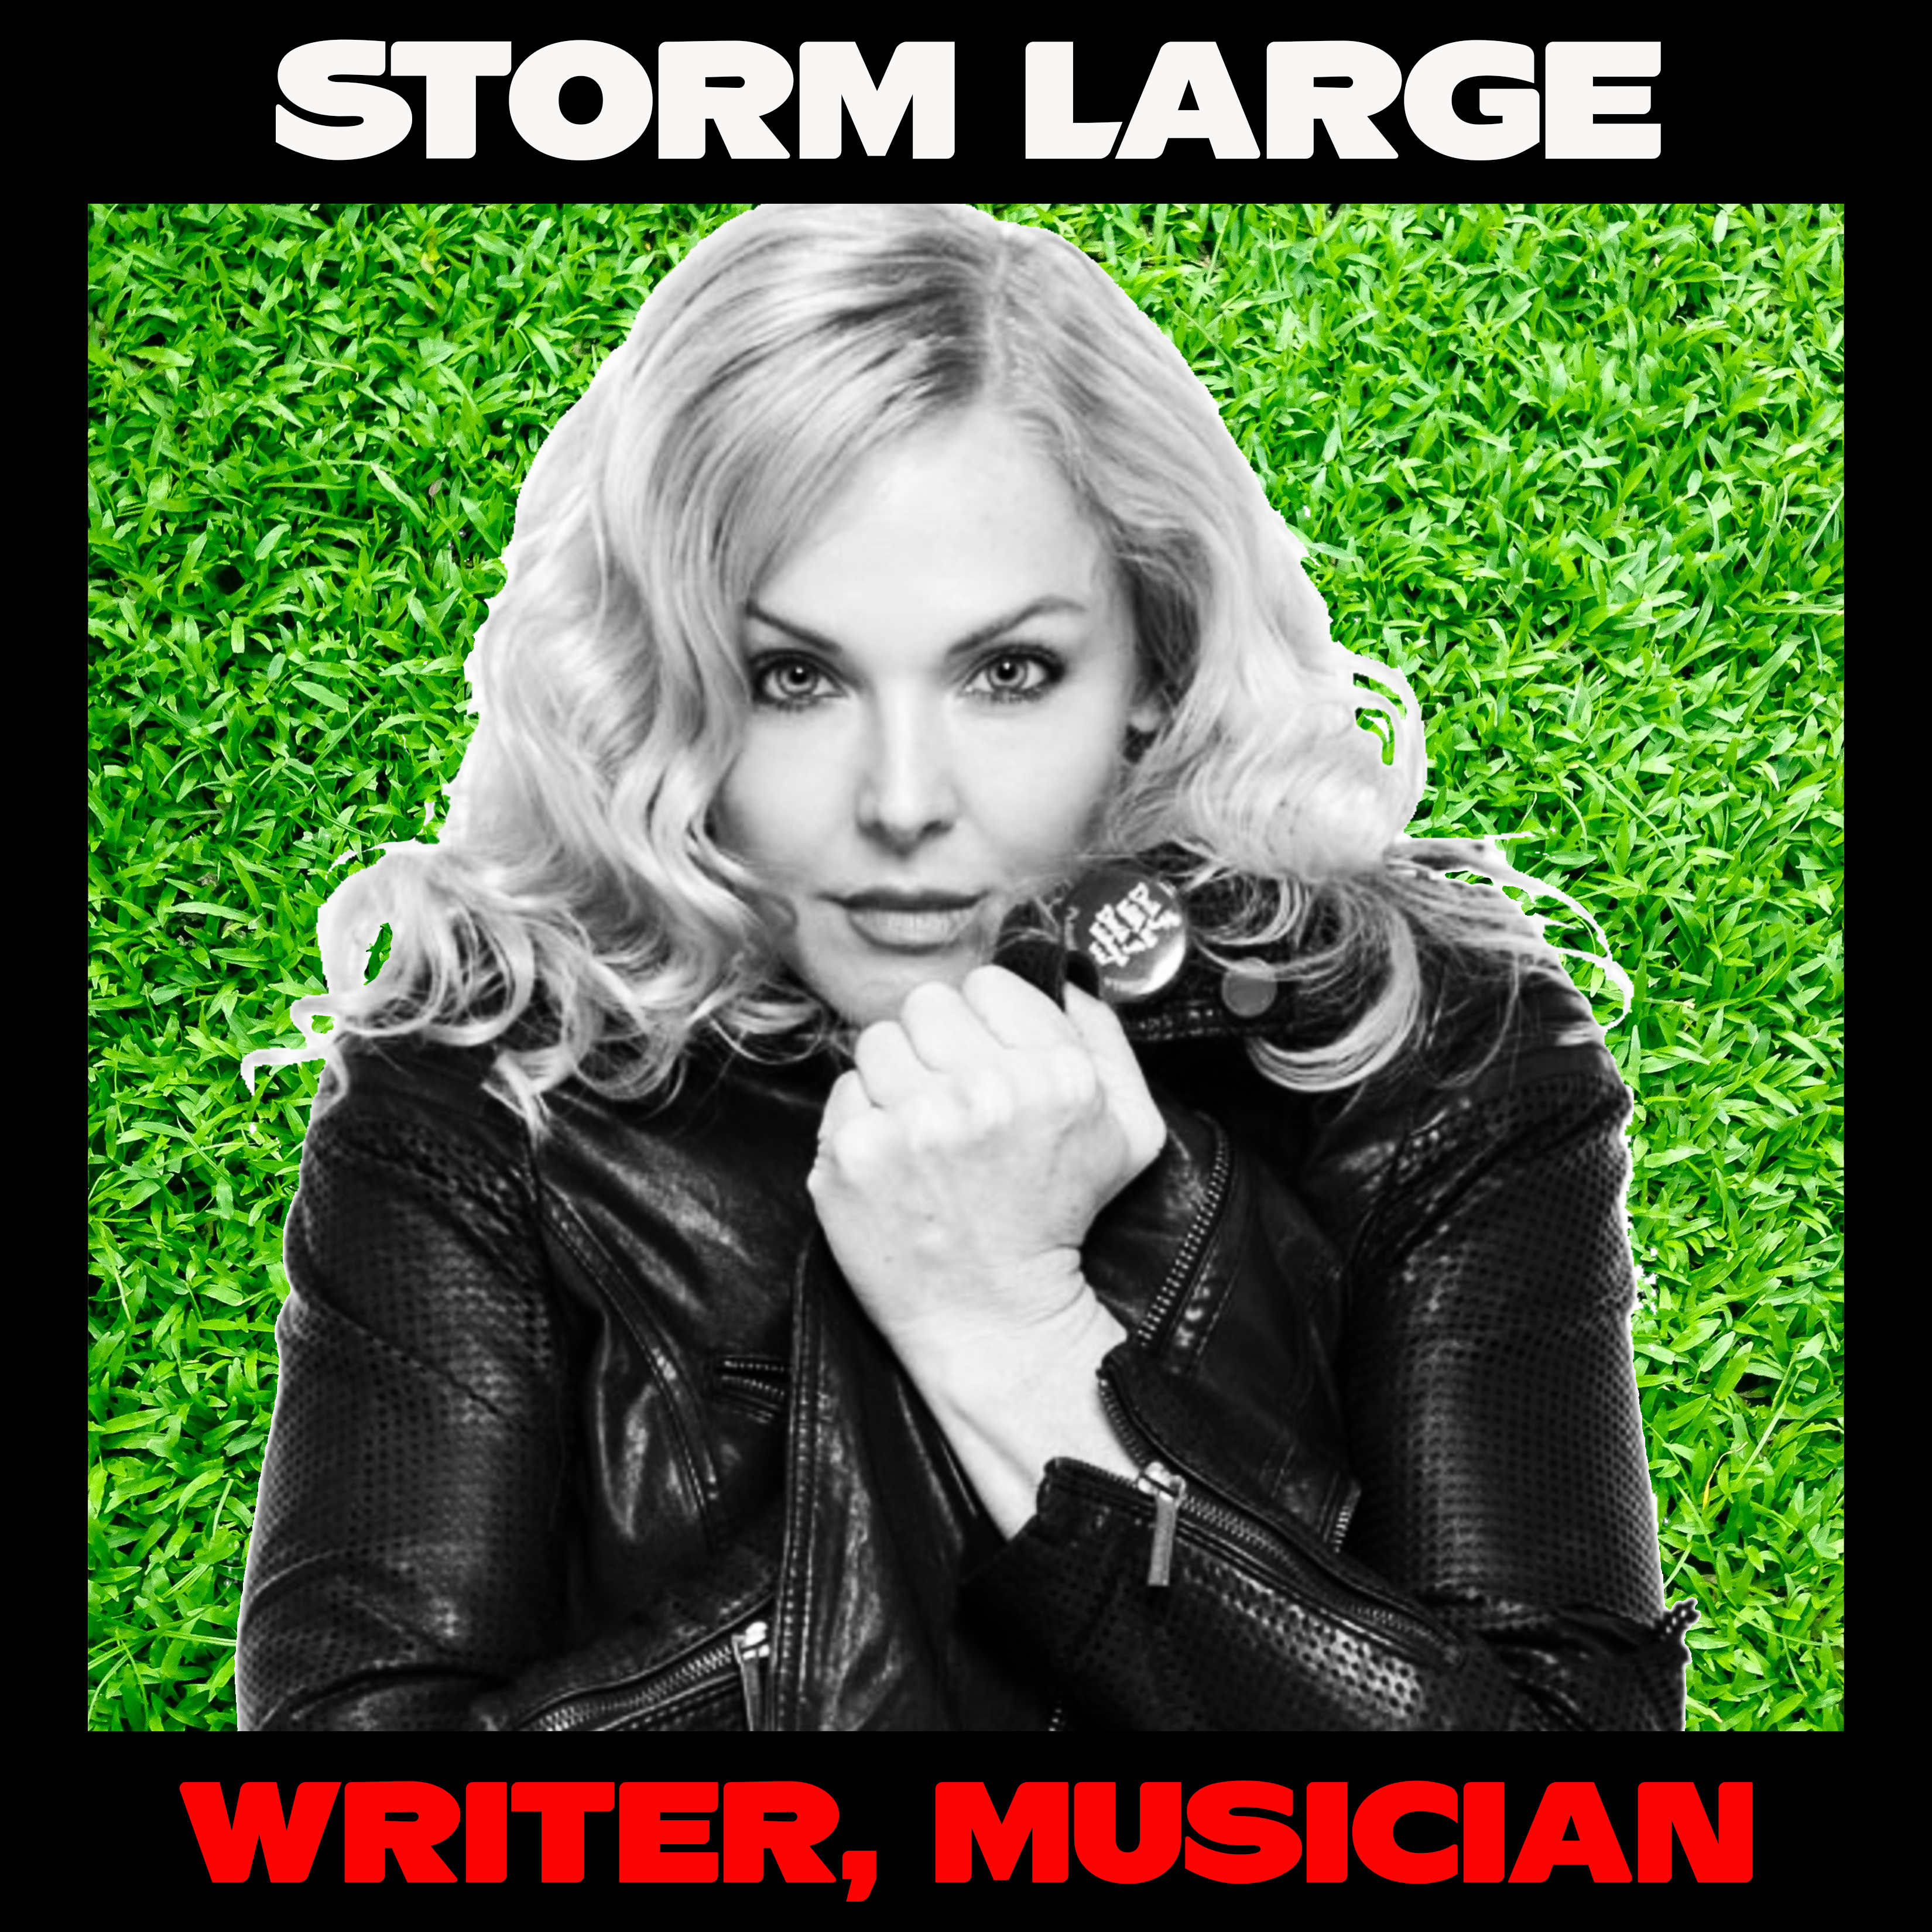 Storm Large, Writer, Musician